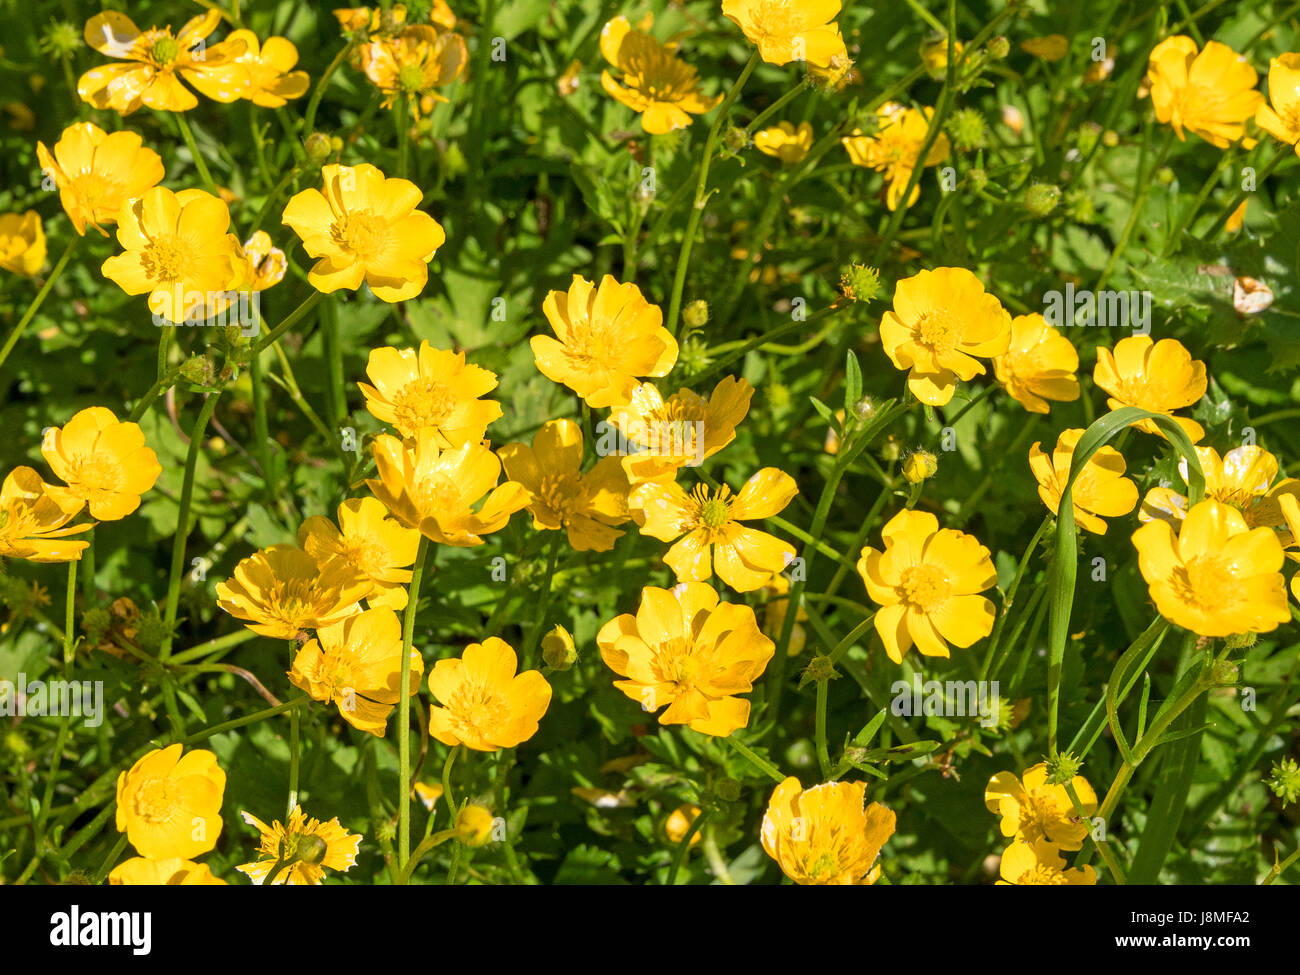 buttercups ranunculus, growing in a meadow - Stock Image